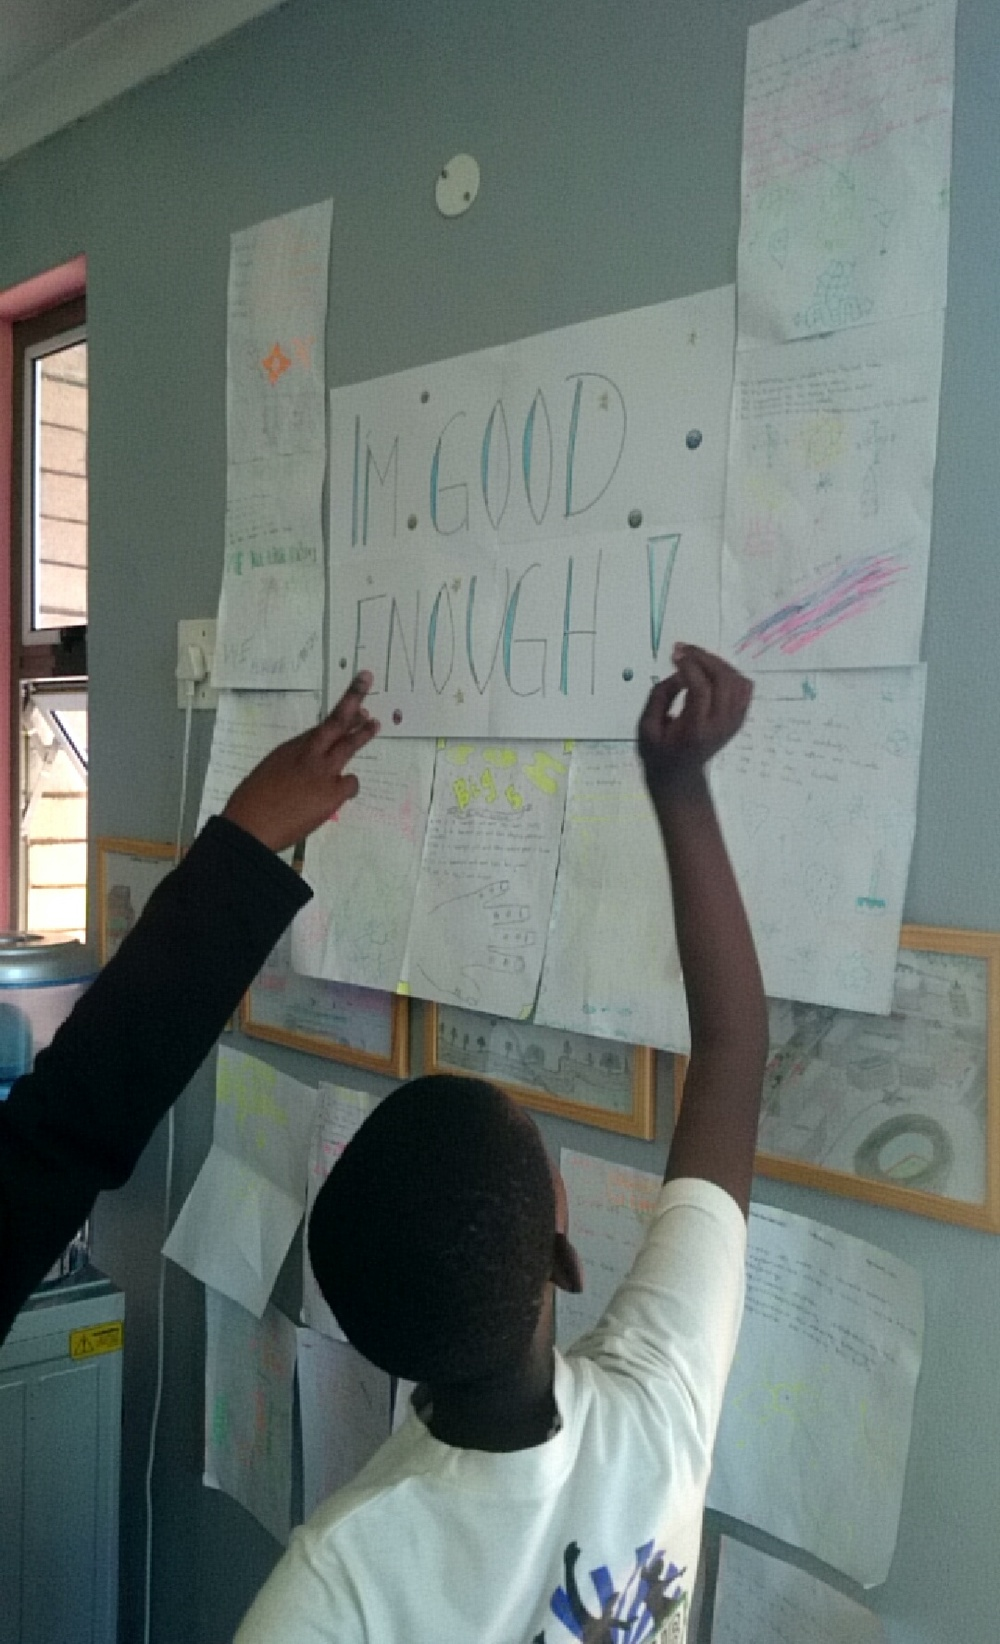 A group presenting their work for the other youths